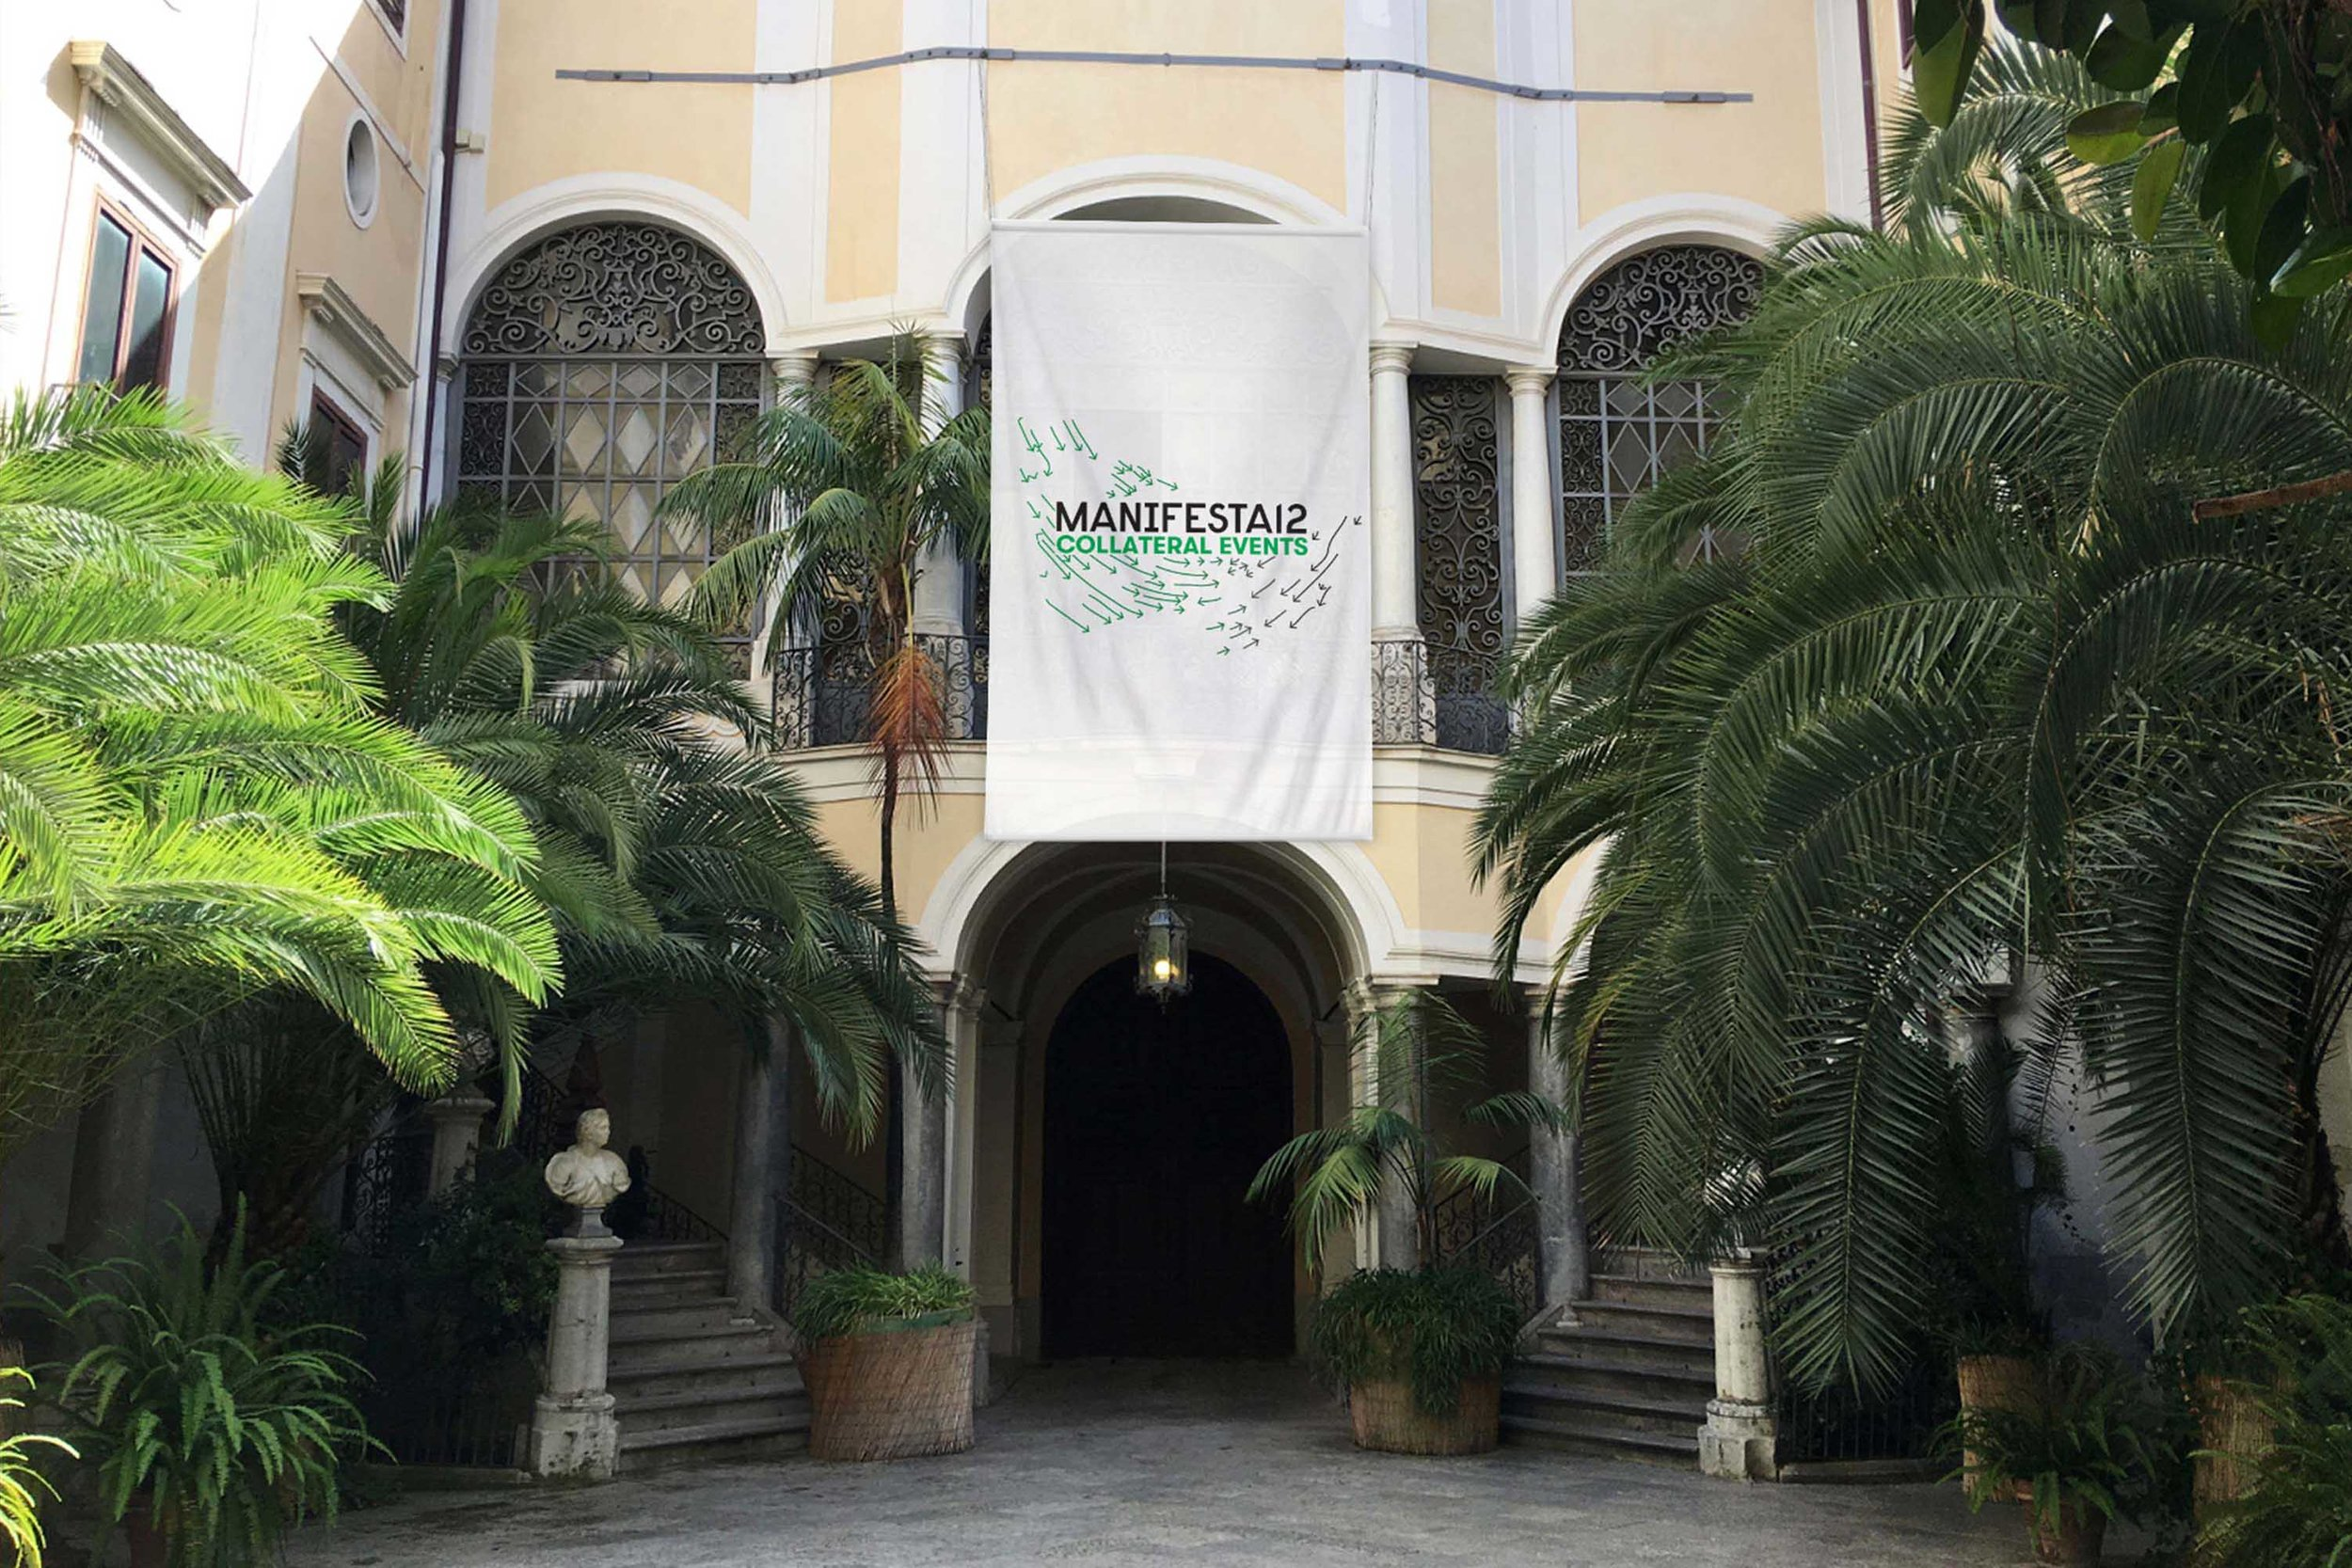 M12 Collateral Events_MOCKUP - Palazzo Valguarnera.jpg